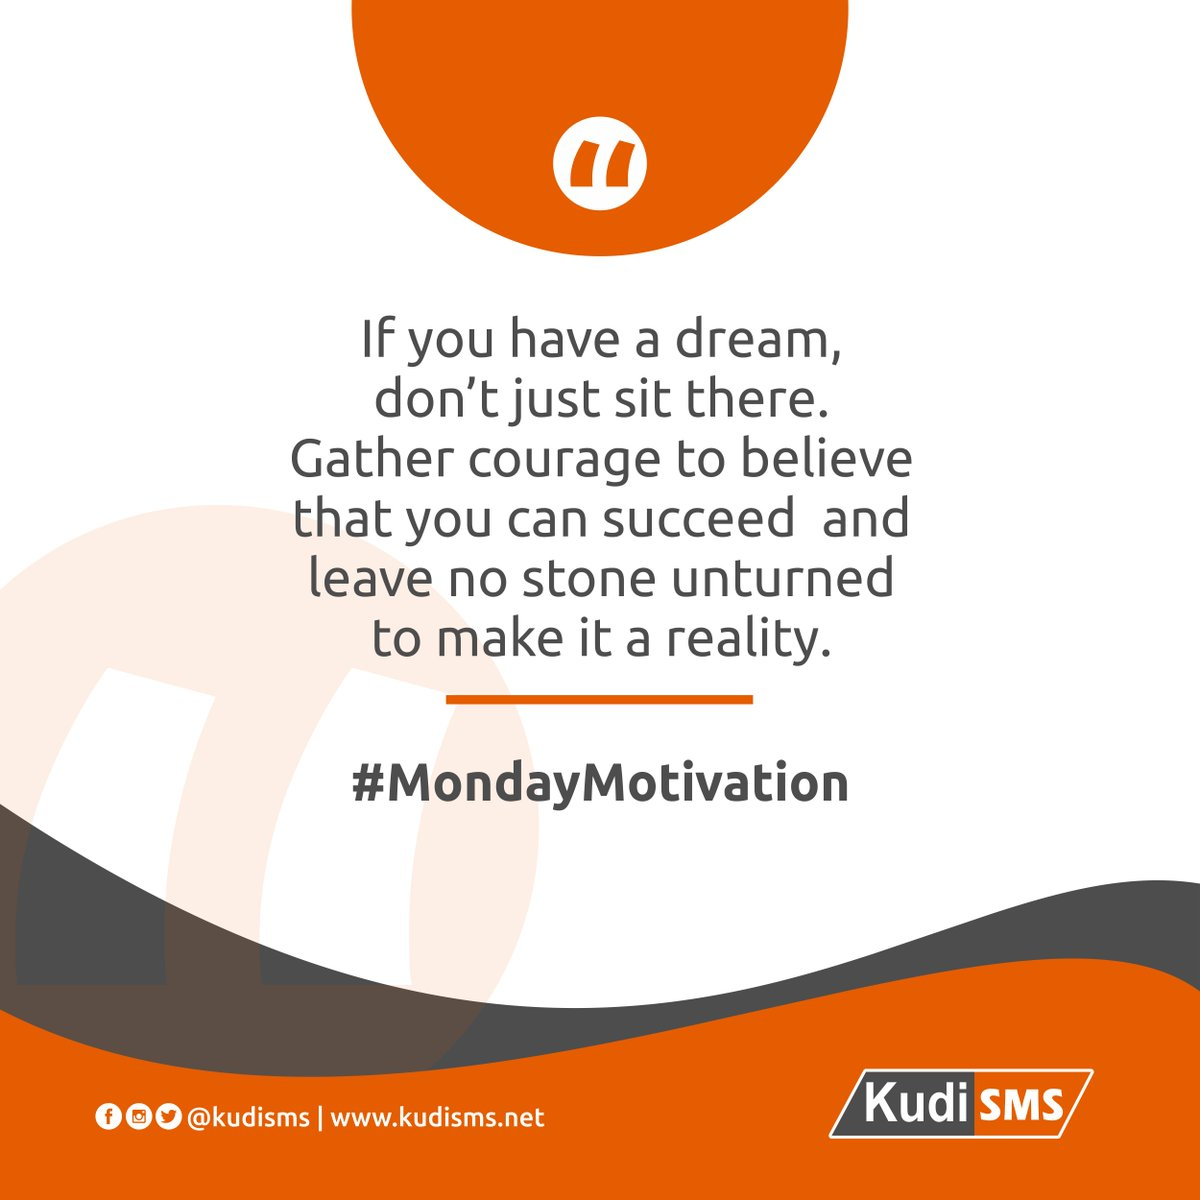 #MondayMotivation  If you have a dream, don't just sit there. Gather courage to believe that you can succeed and leave no stone unturned to make it a reality.  #Monday #Motivation #MondayThoughts #MondayWisdom #MondayMood #MondayFeelings #KudiSms #SmsApi #BulkSms #SmsMarketing <br>http://pic.twitter.com/8YngD0YJfj